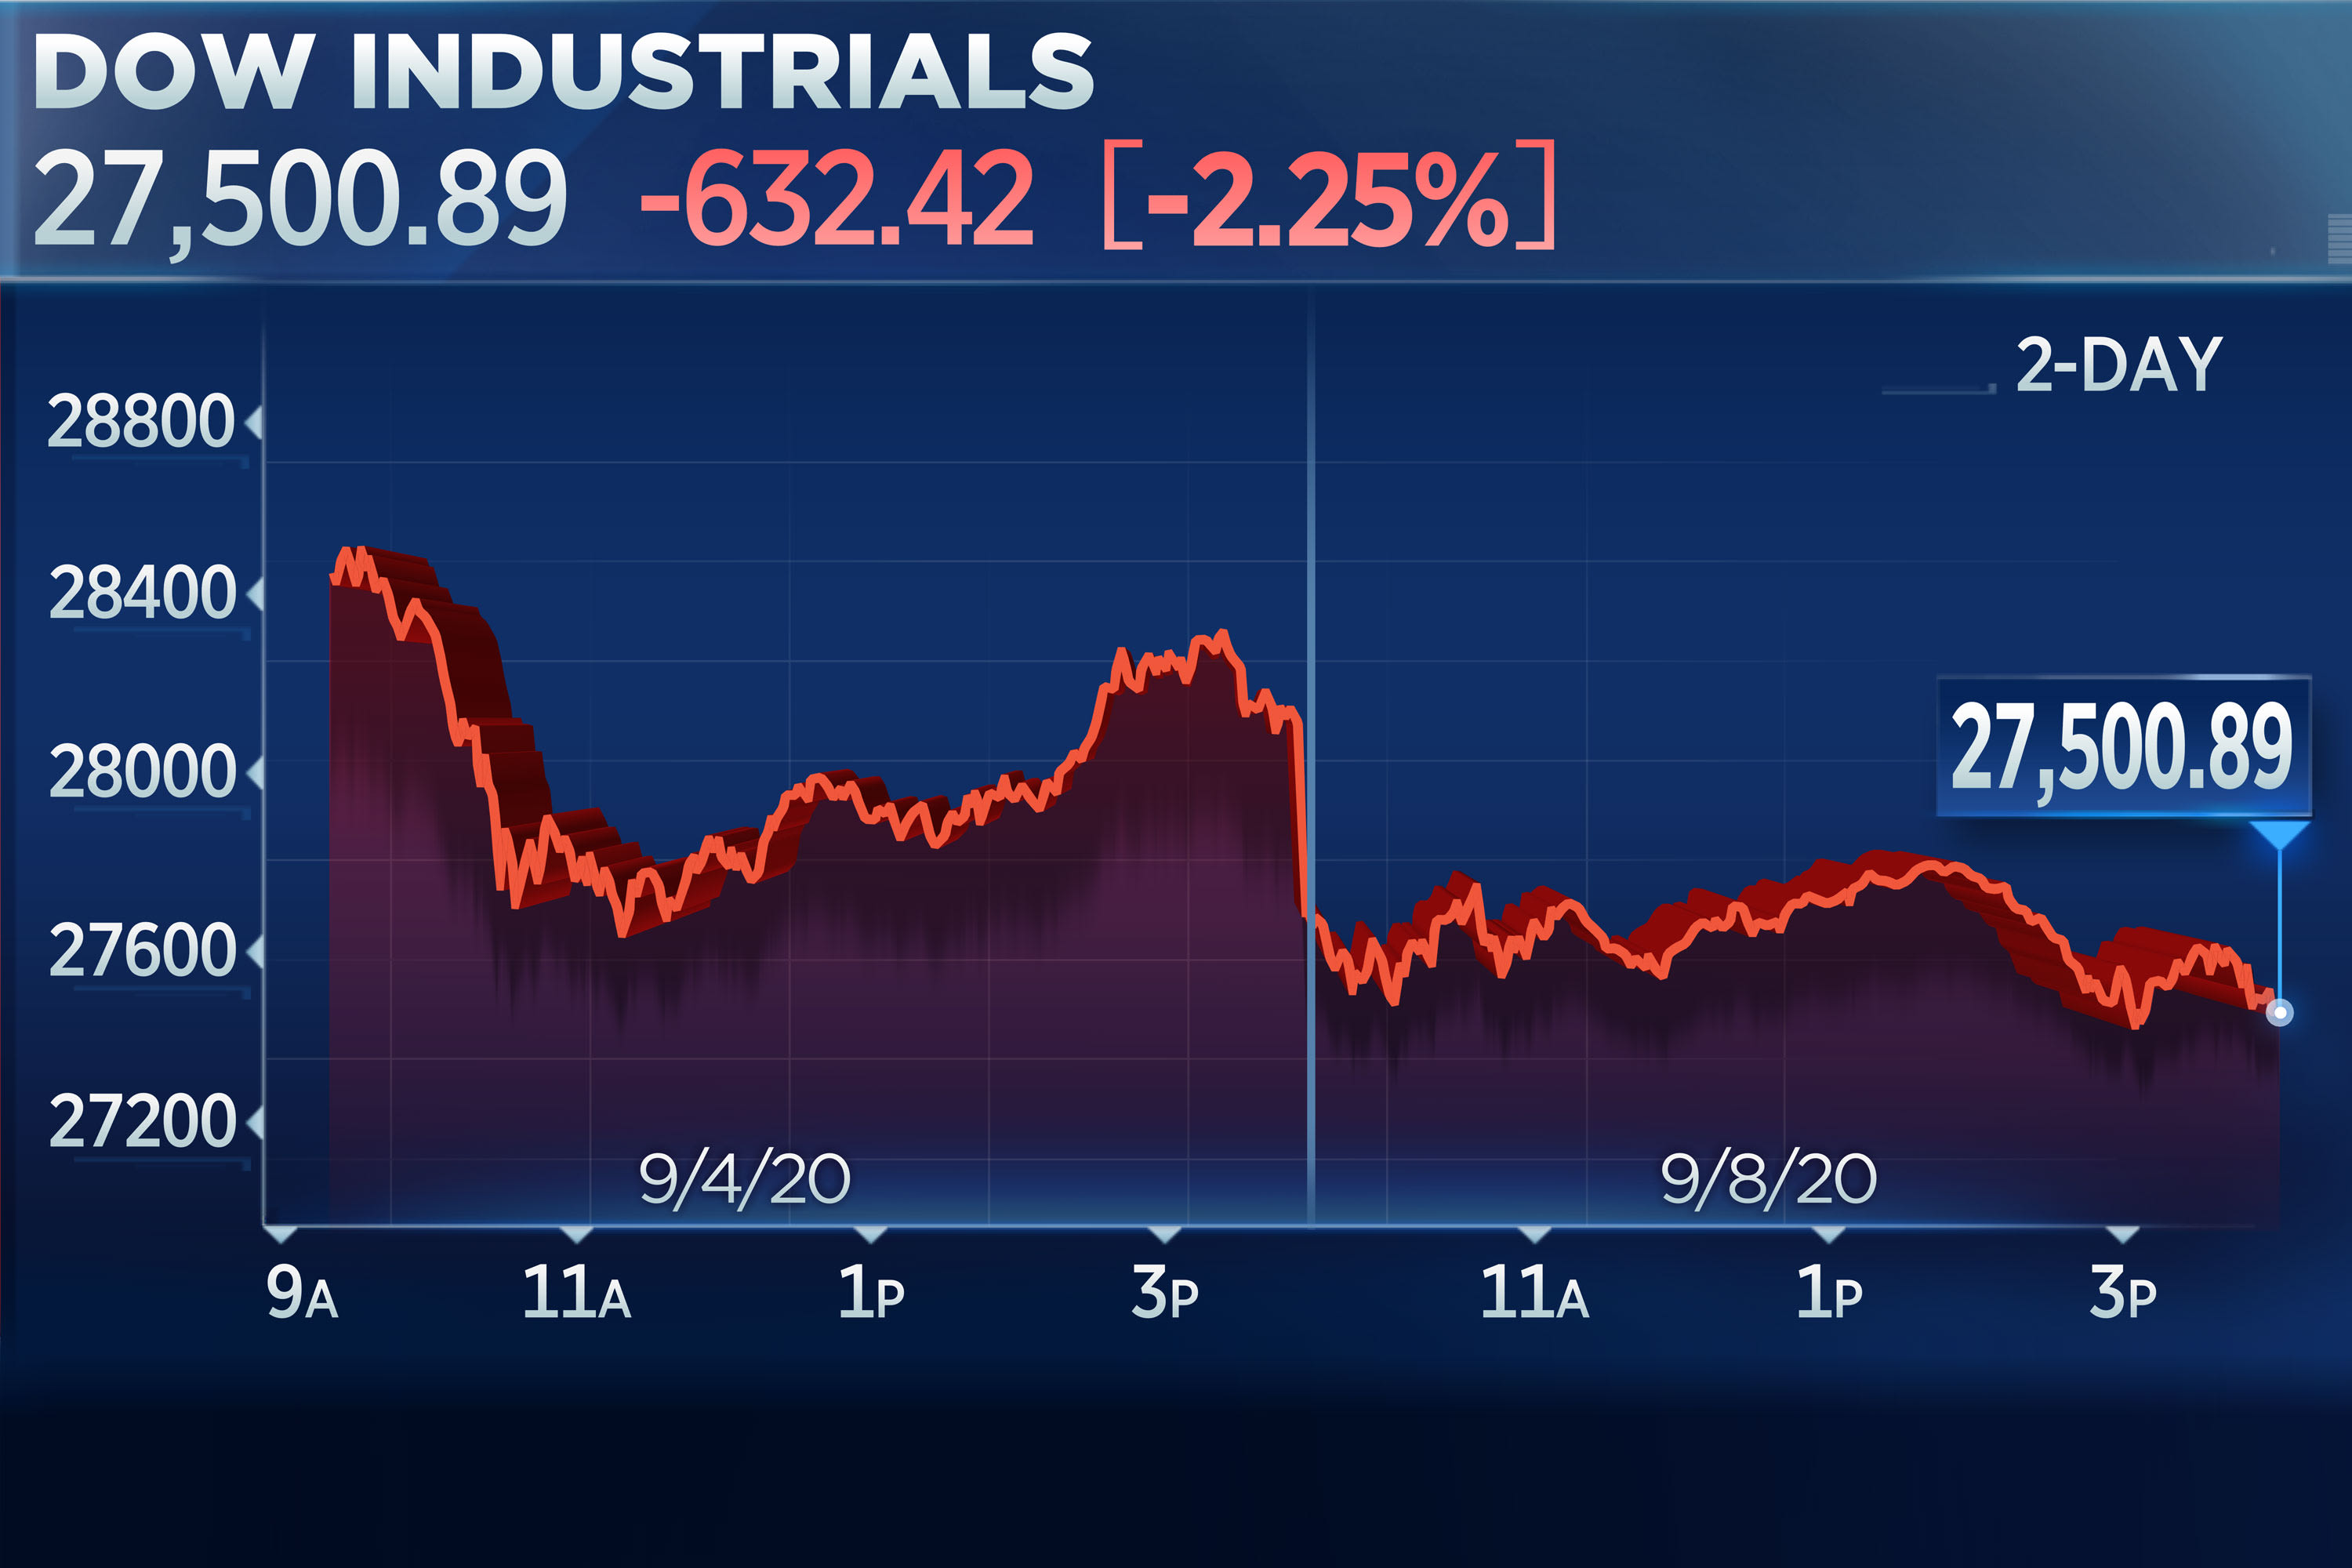 Dow drops 600 points as tech stocks fall again, Nasdaq down 10% in 3 days thumbnail